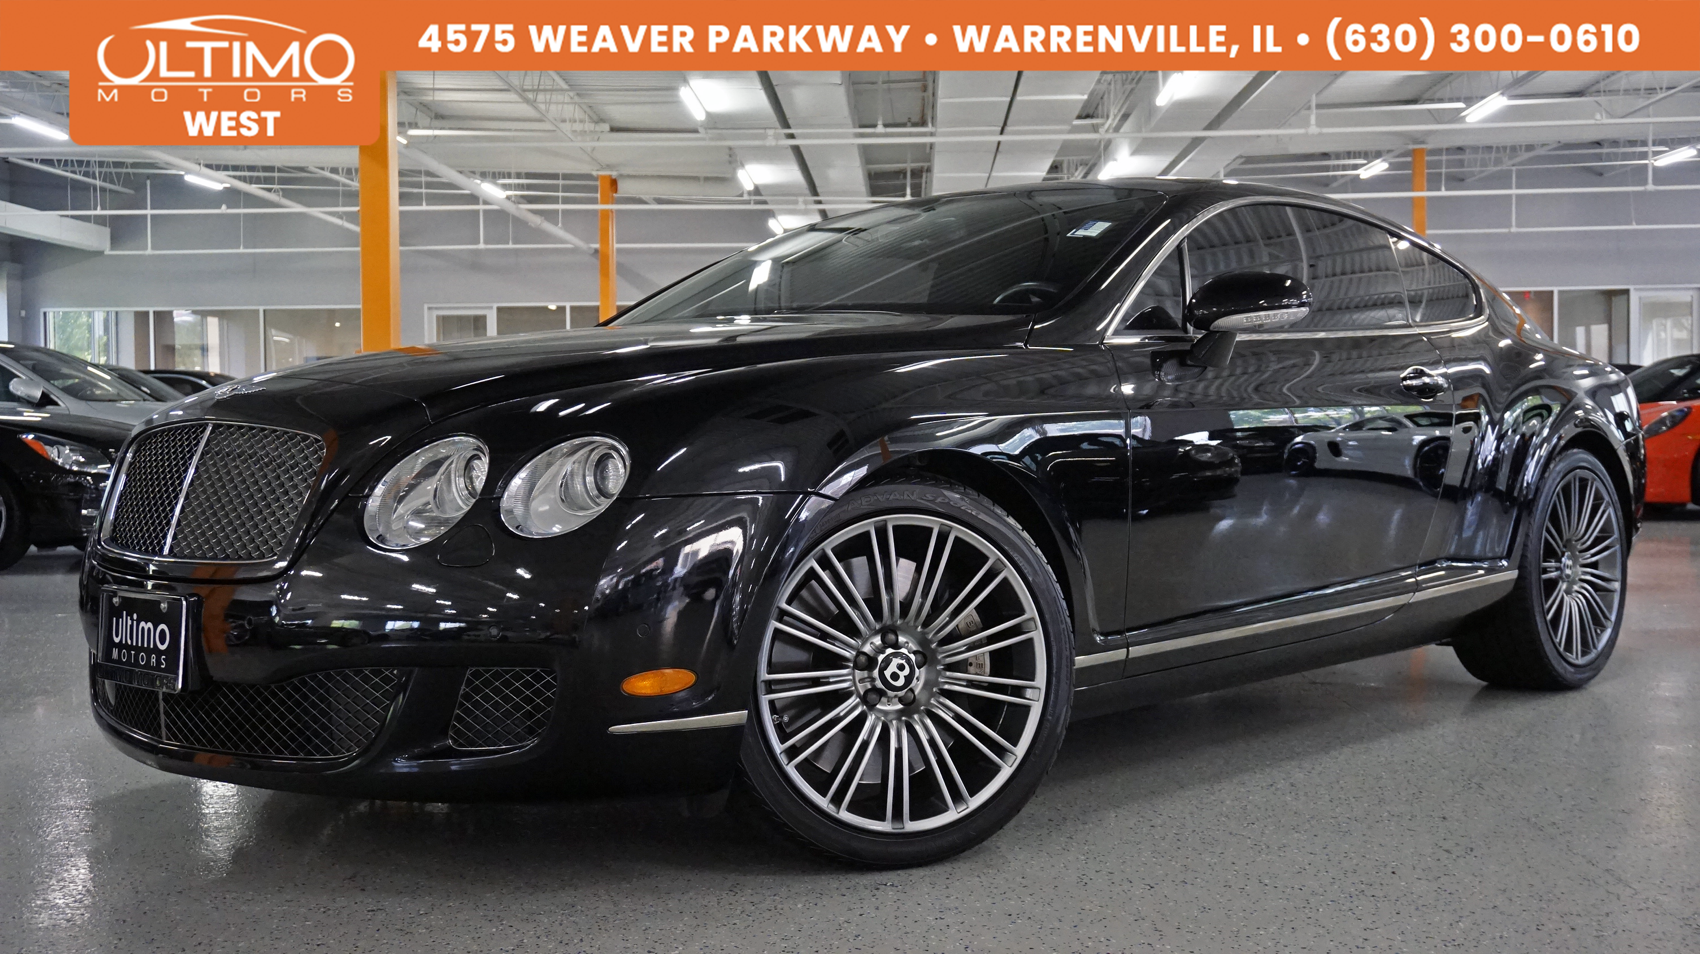 Pre-Owned 2009 Bentley Continental GT Speed Stitch Seats, Adaptive Cruise MSRP $219,735